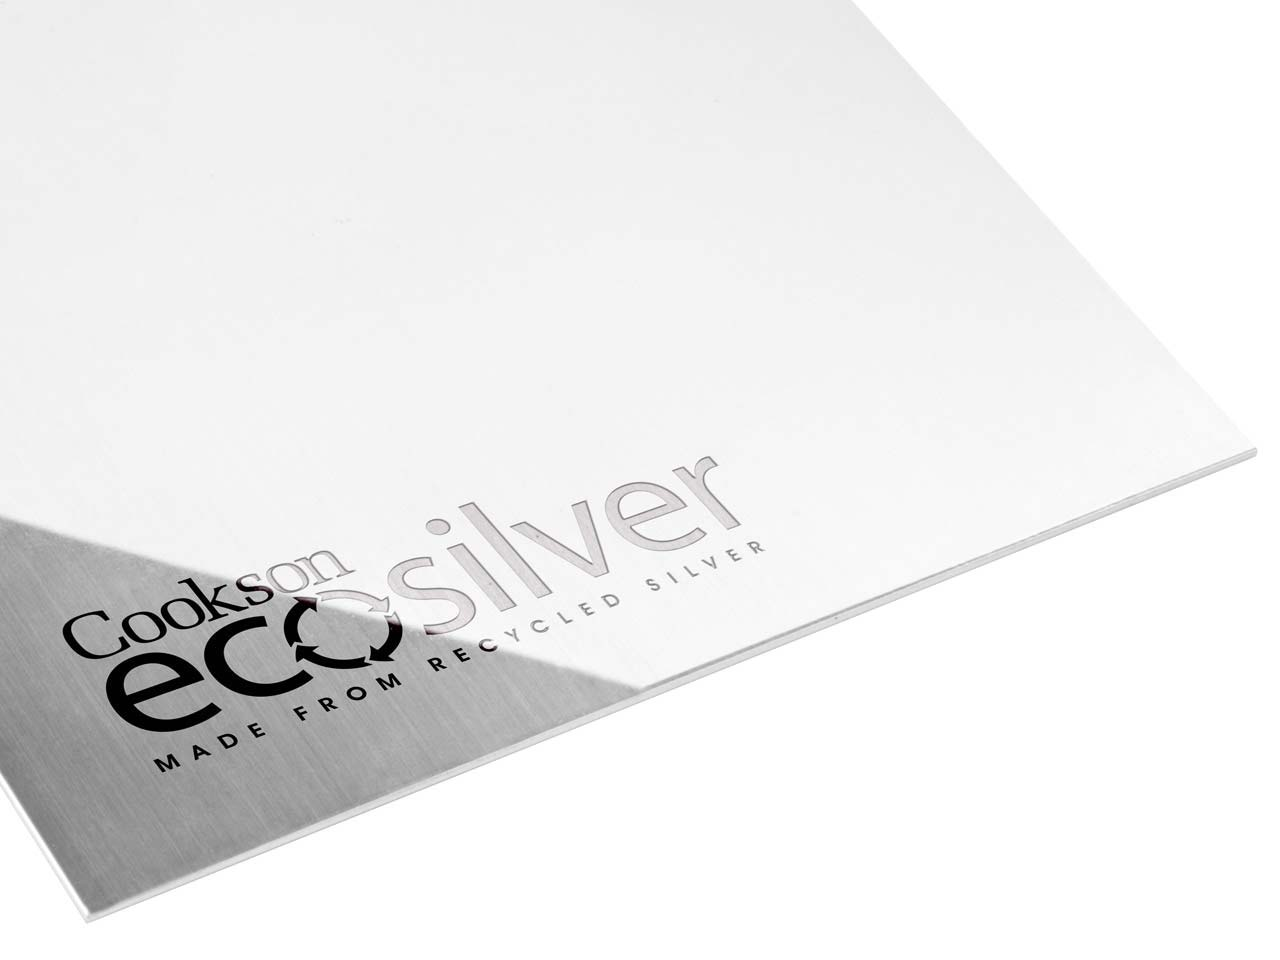 Ecosilver Sheet 0.60mm